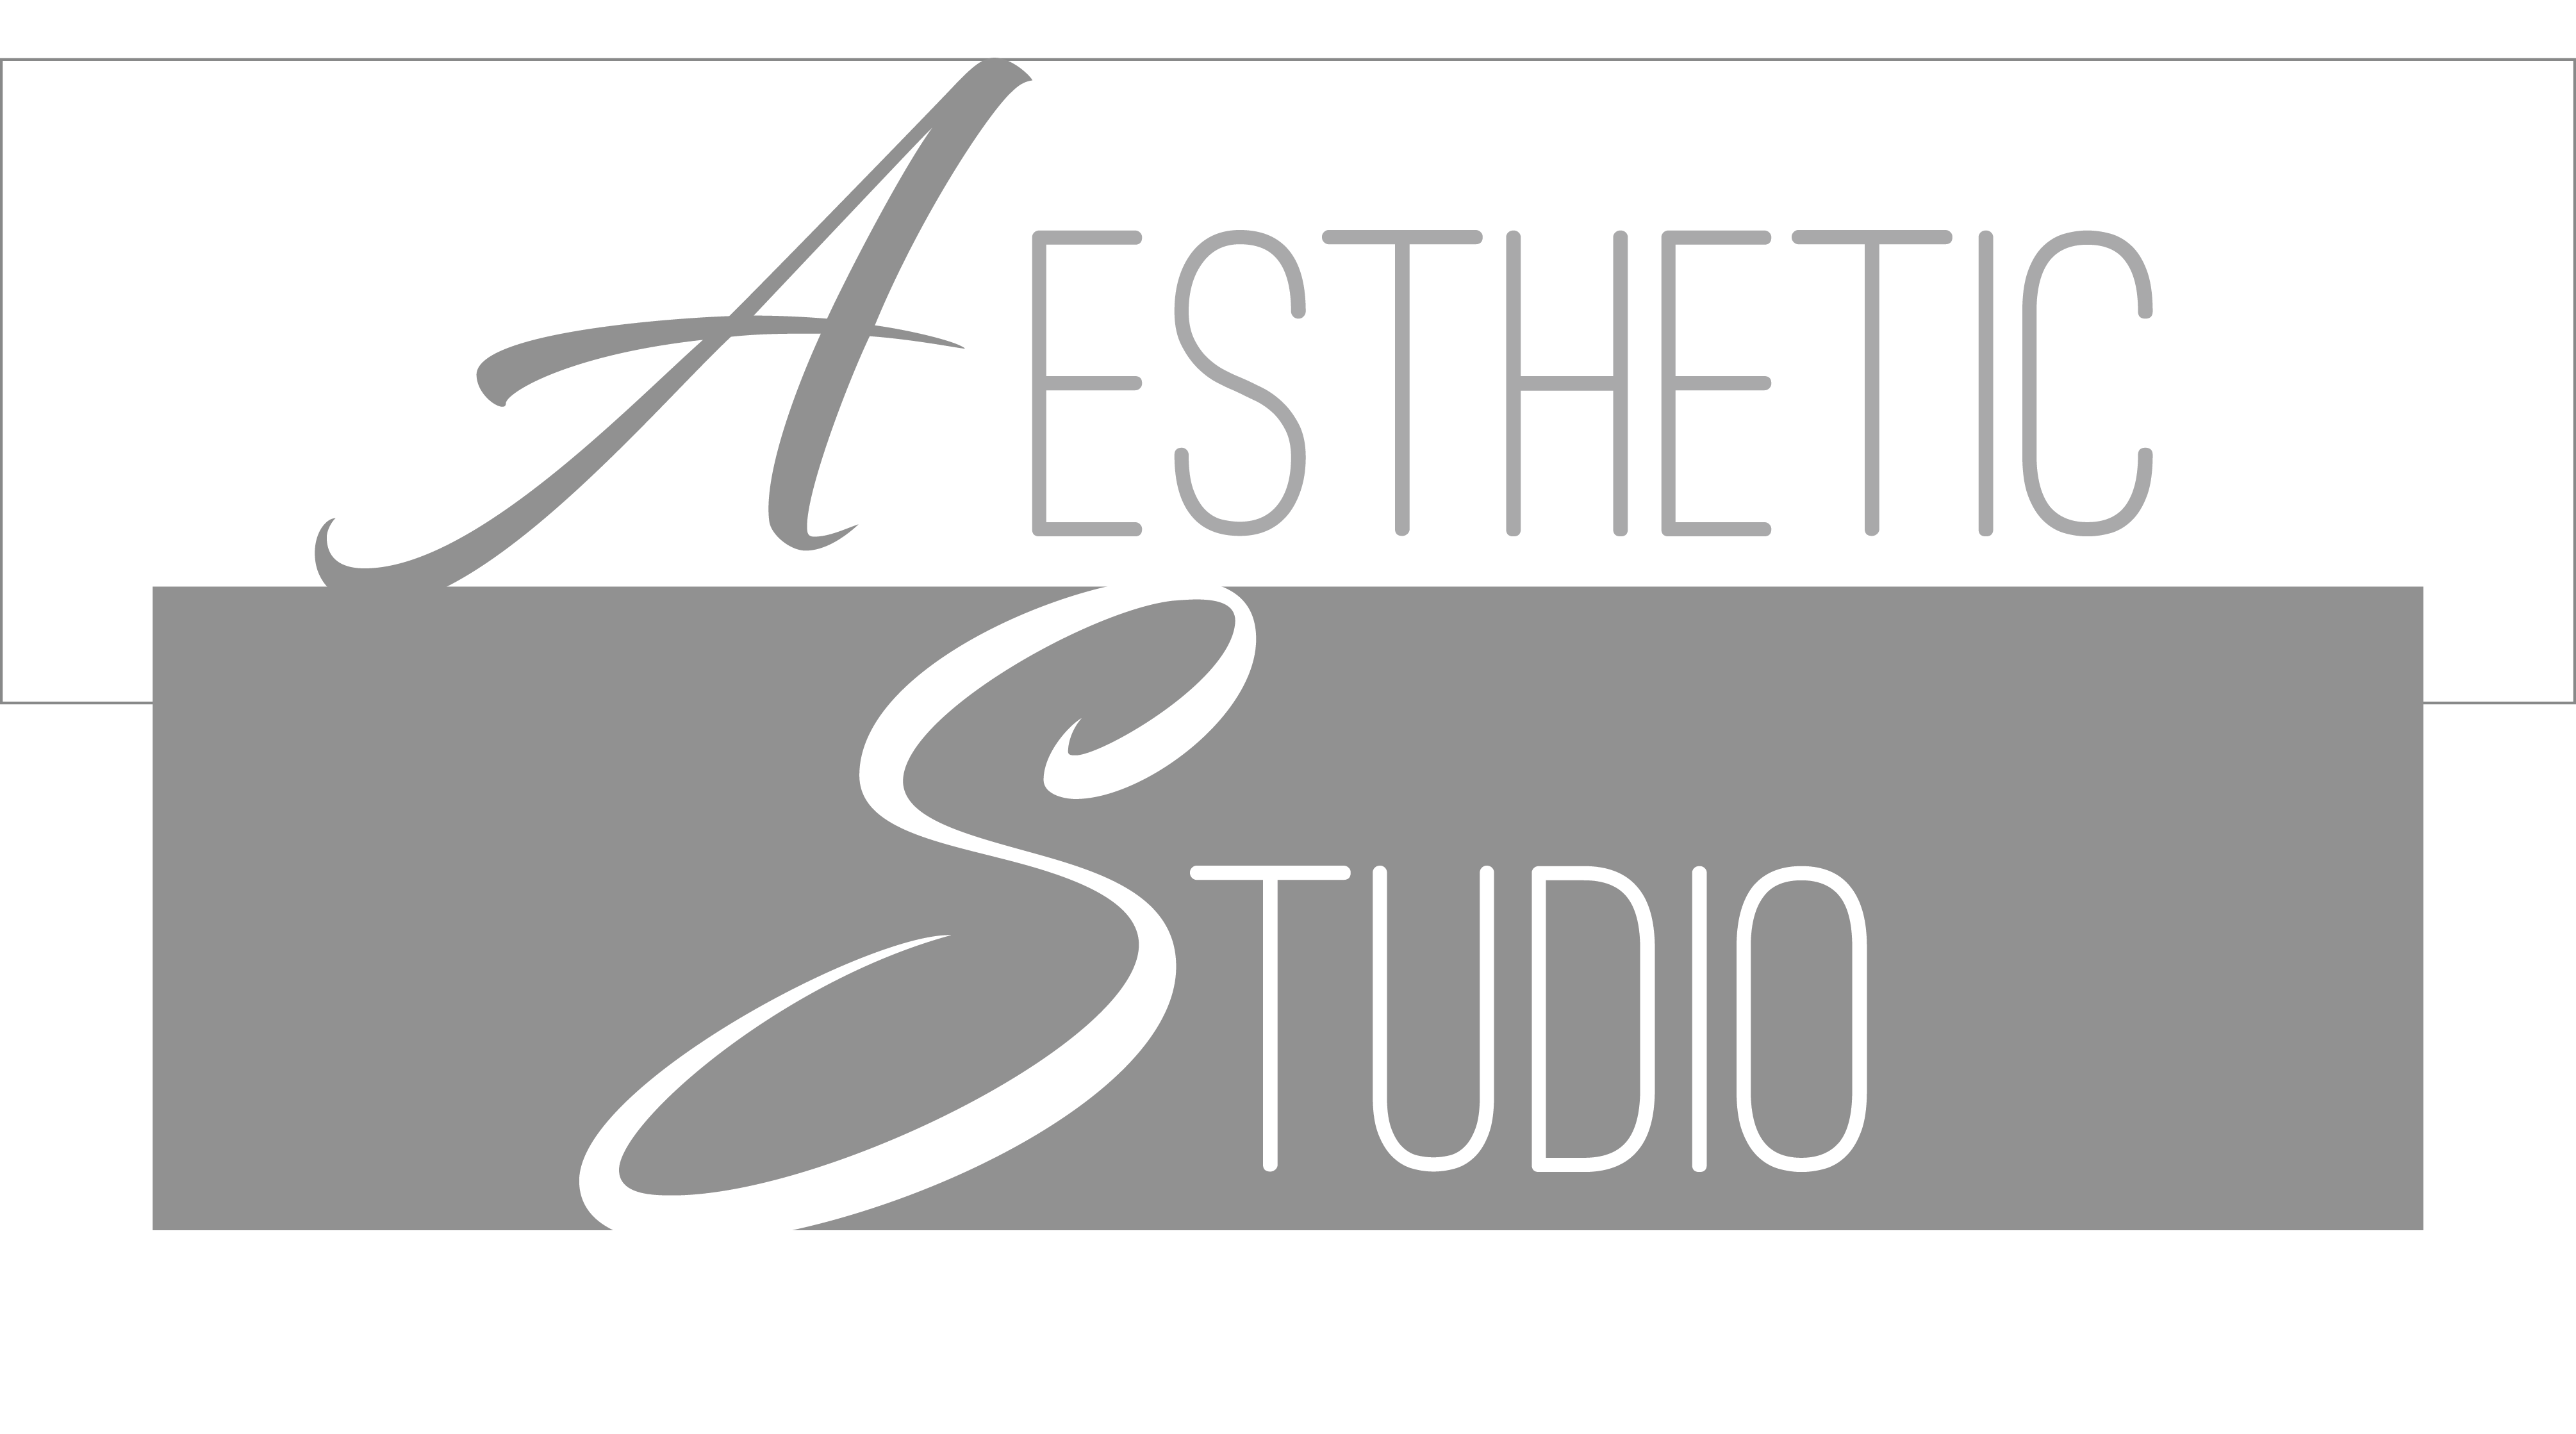 As Aestheticstudio